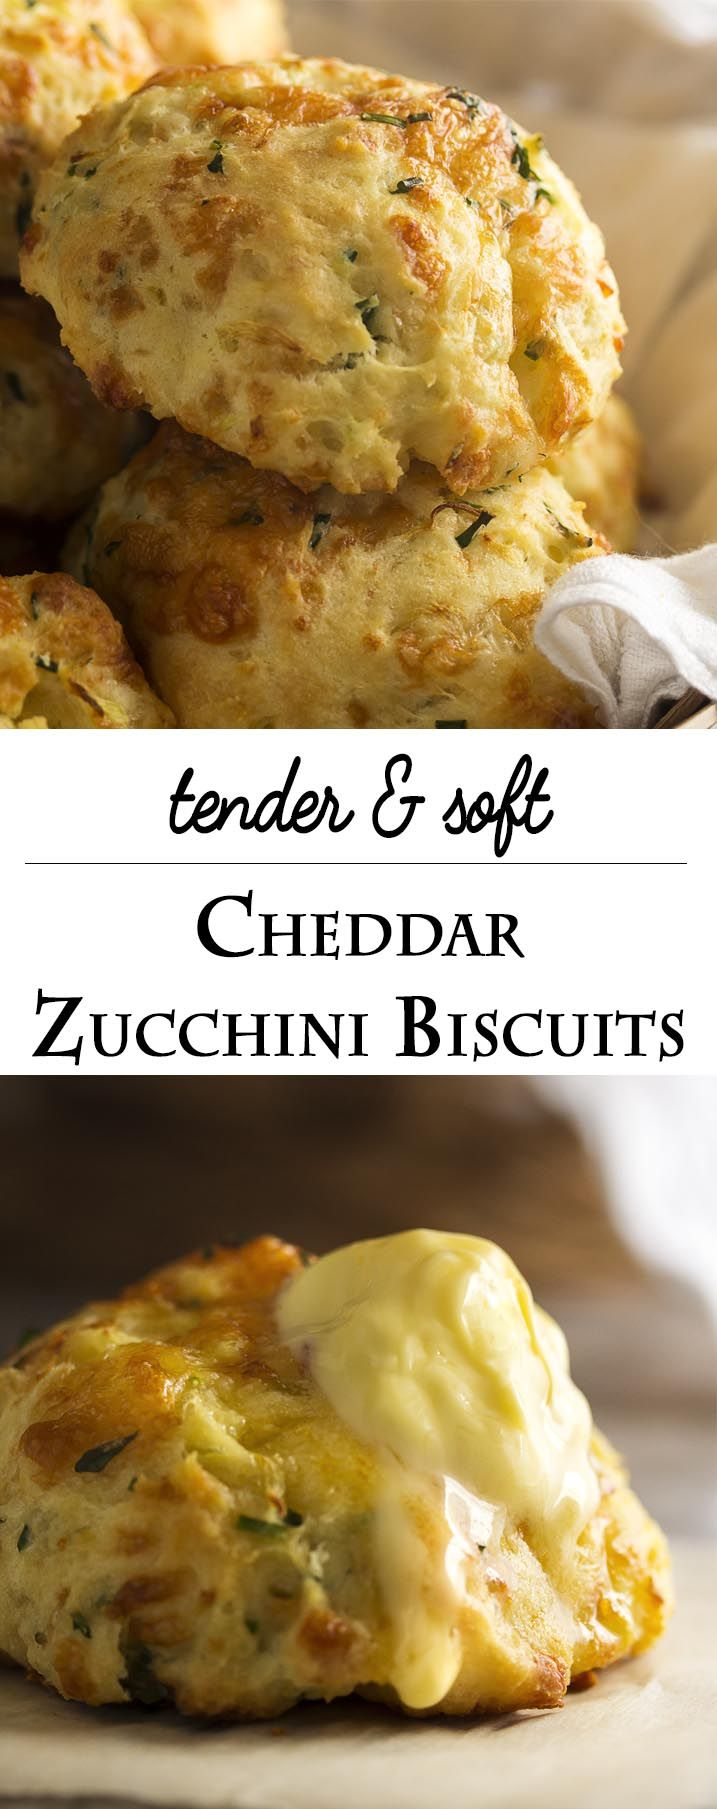 Zucchini cheddar biscuits are soft, tender and full of shredded zucchini and… (Baking Zucchini Recipes)